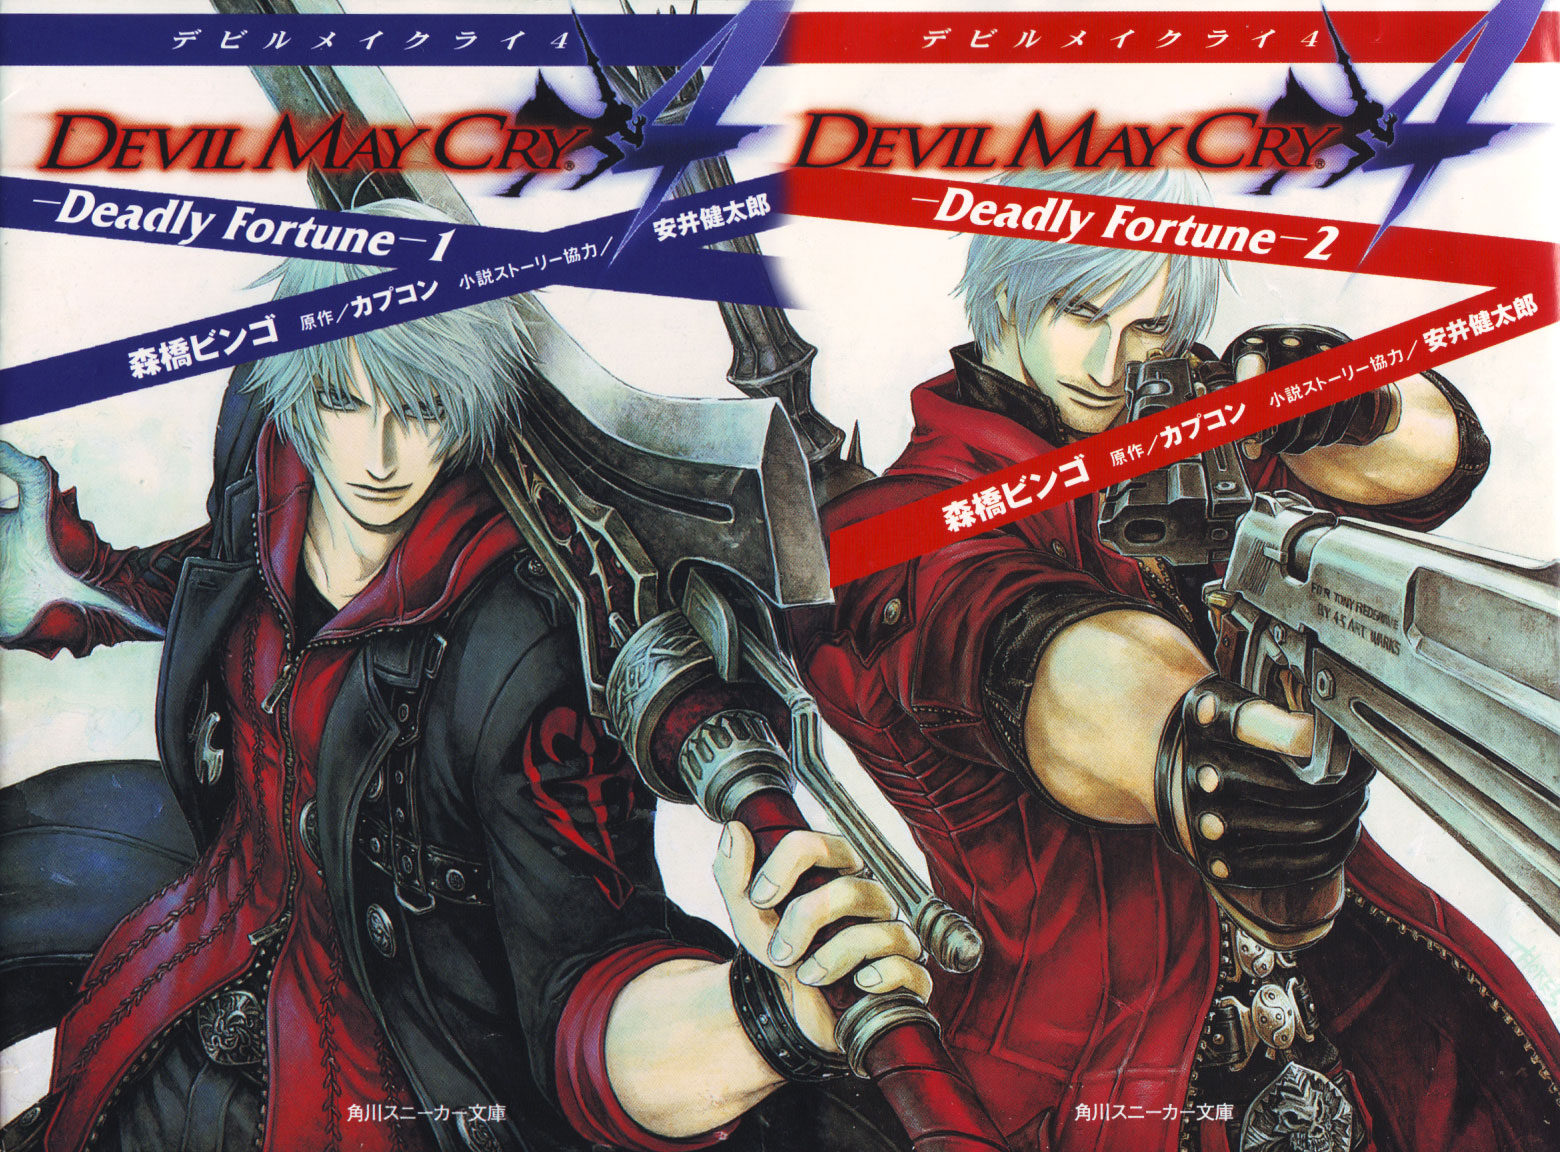 File:Deadly Fortune covers.jpg